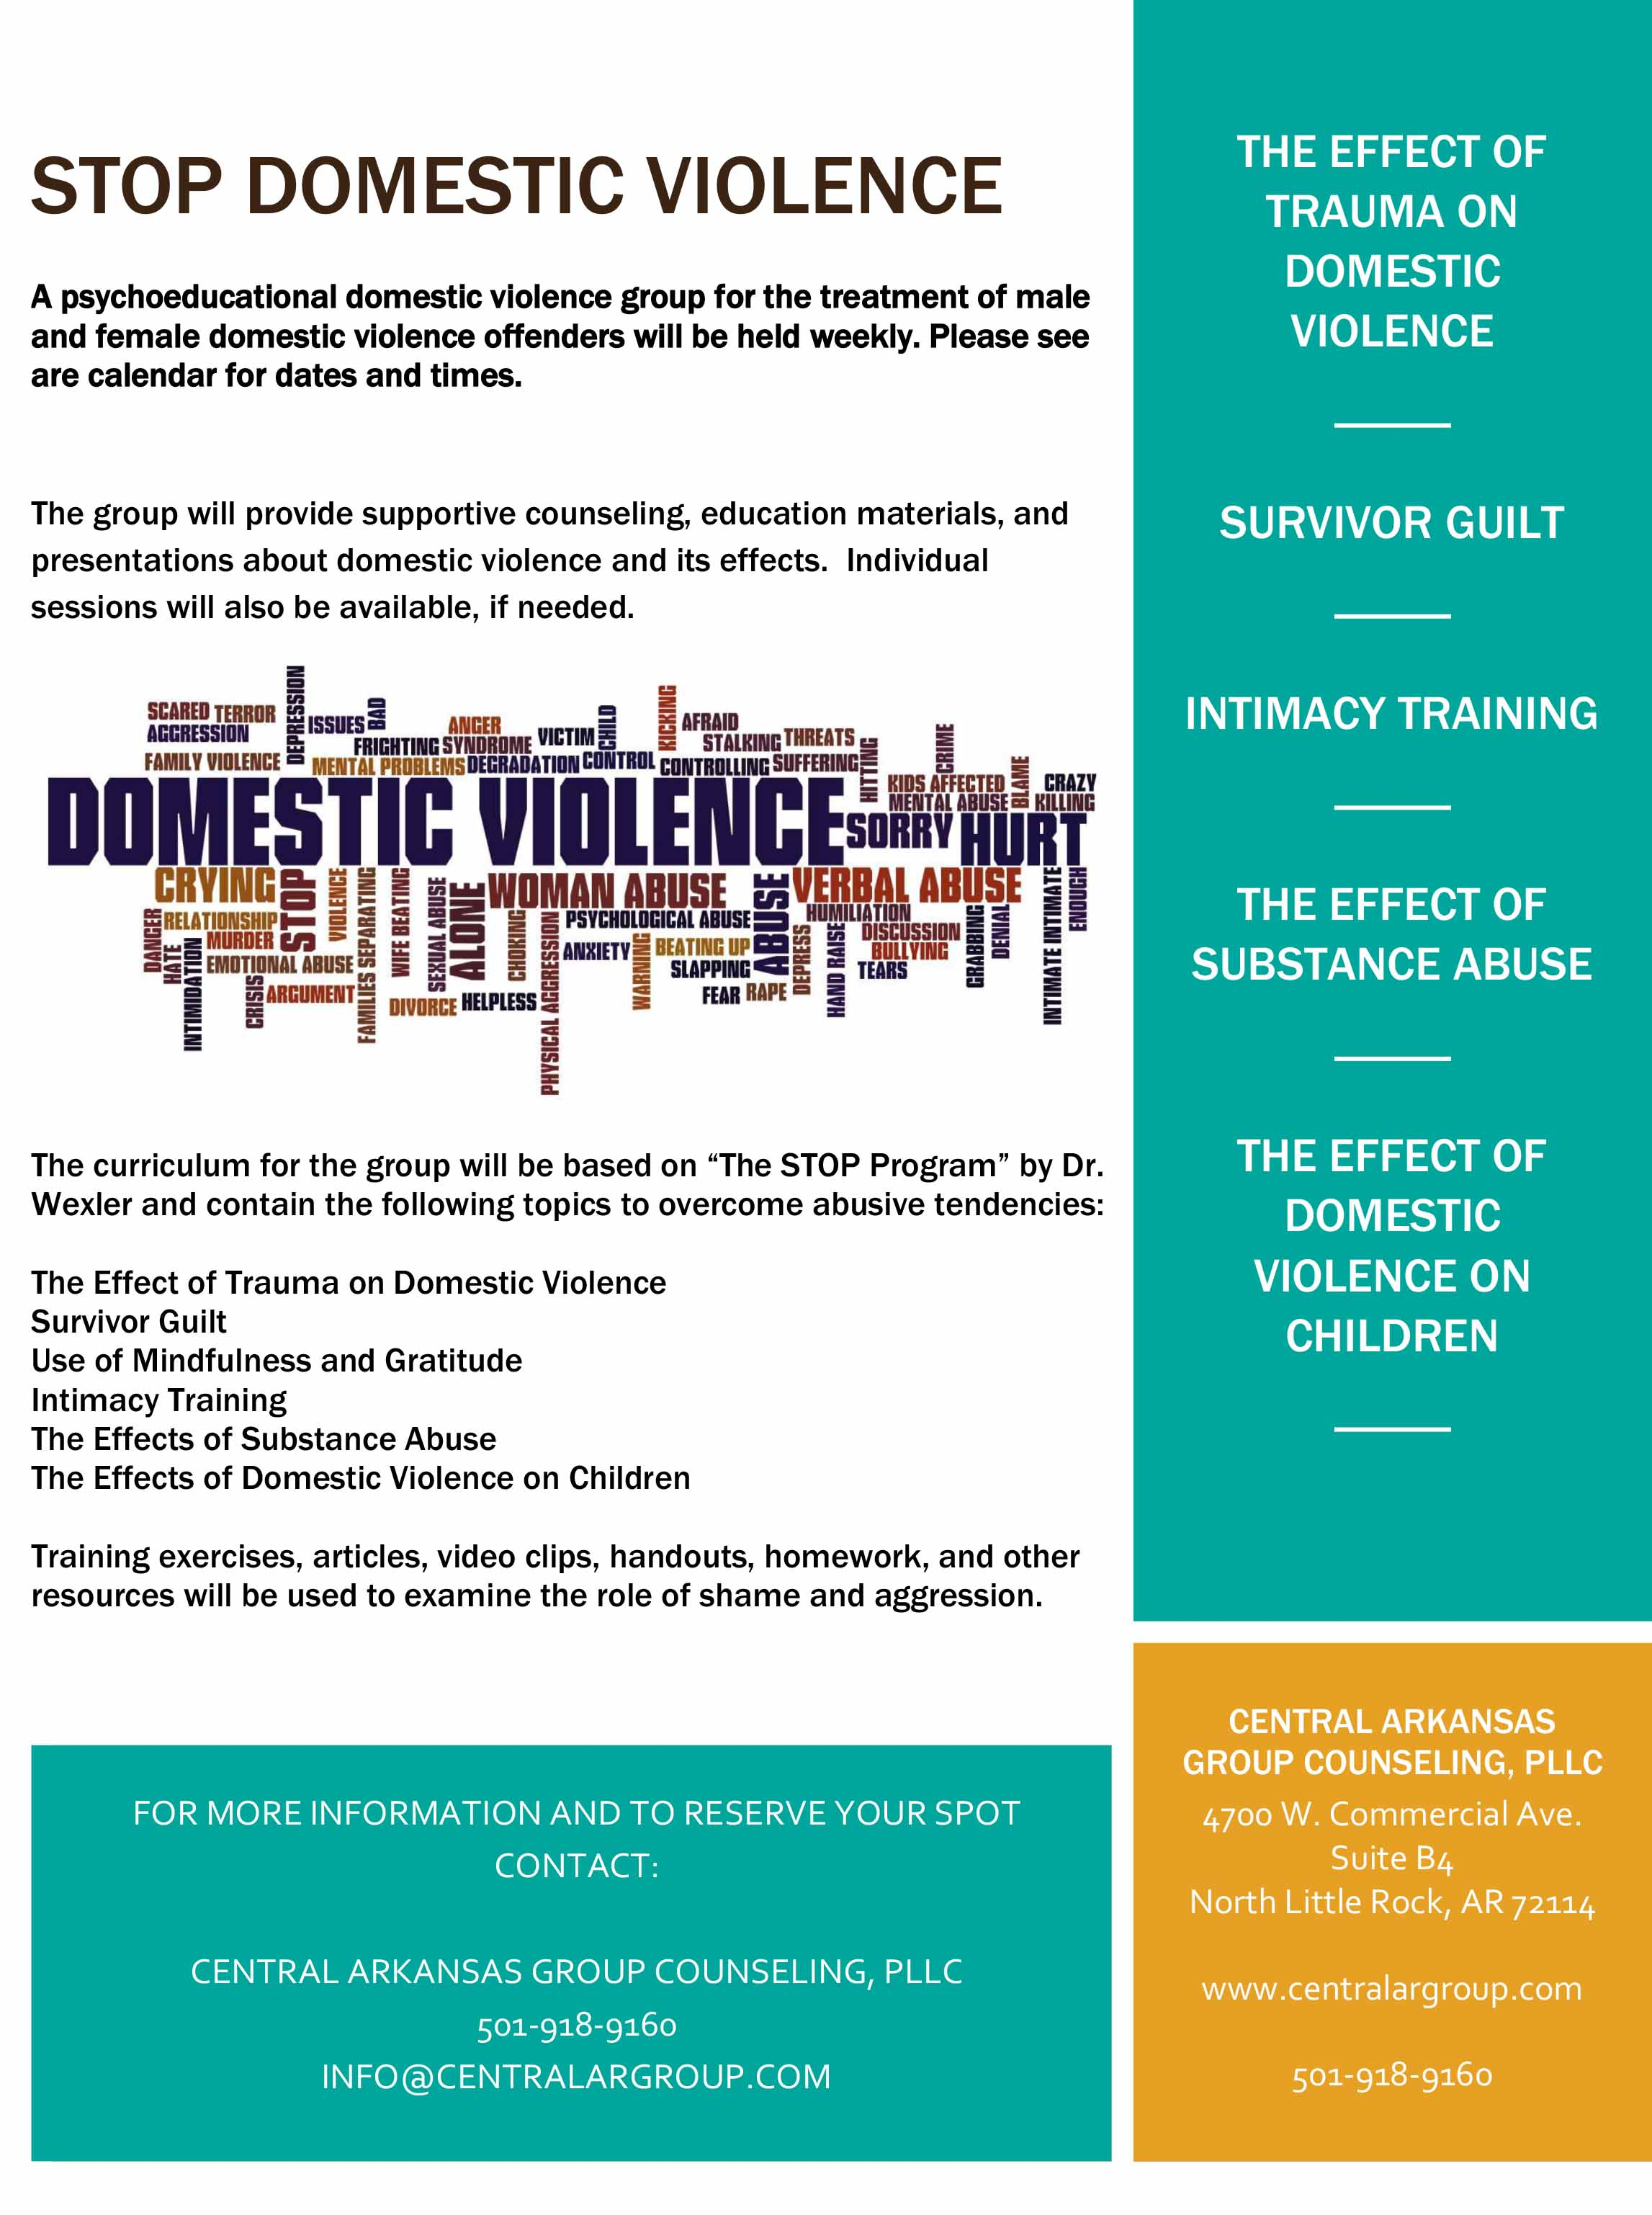 Domestic Violence Flyer 5.31.2018